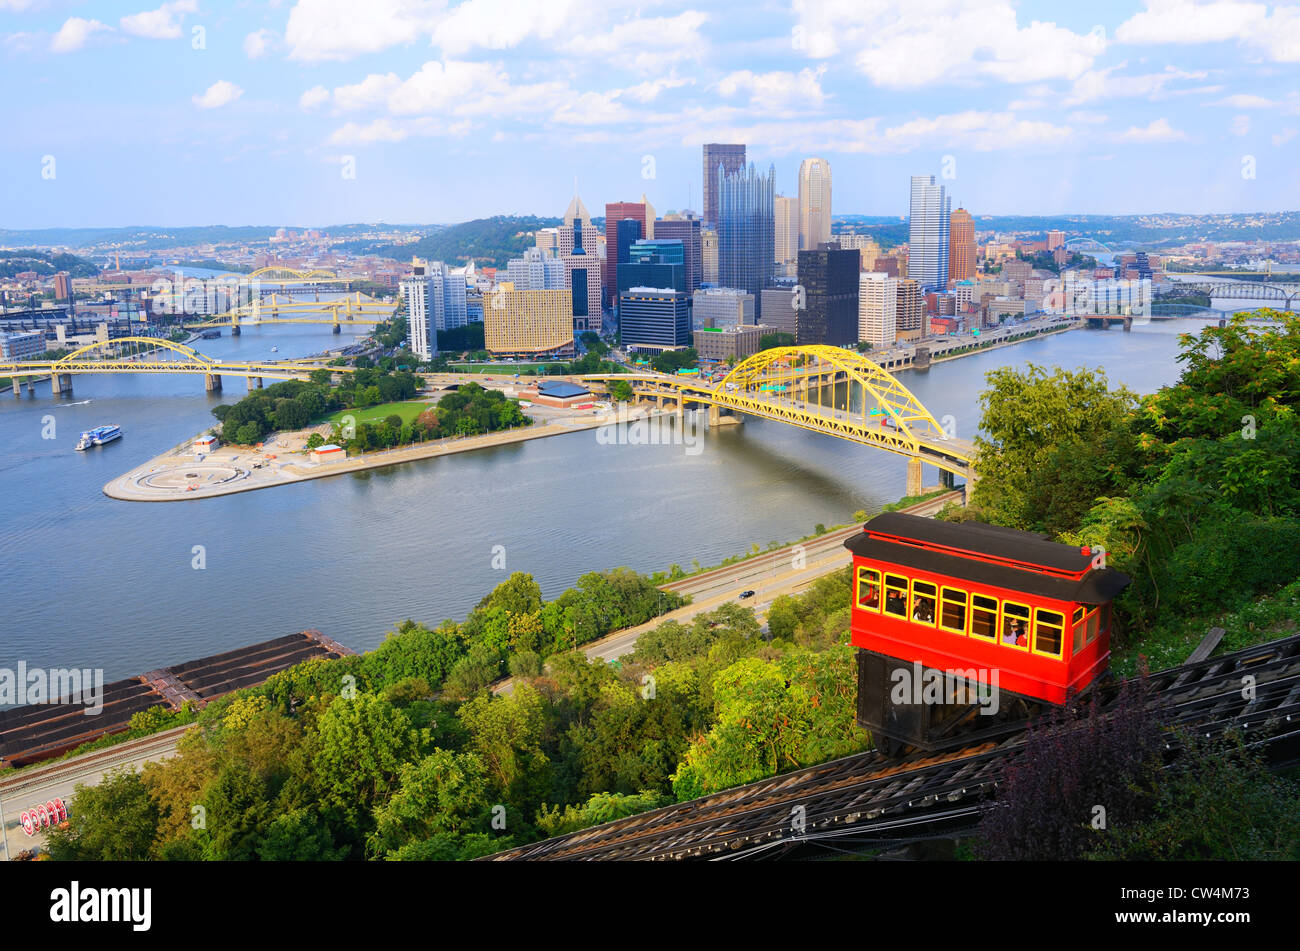 Incline operating in front of the downtown skyline of Pittsburgh, Pennsylvania, USA. - Stock Image